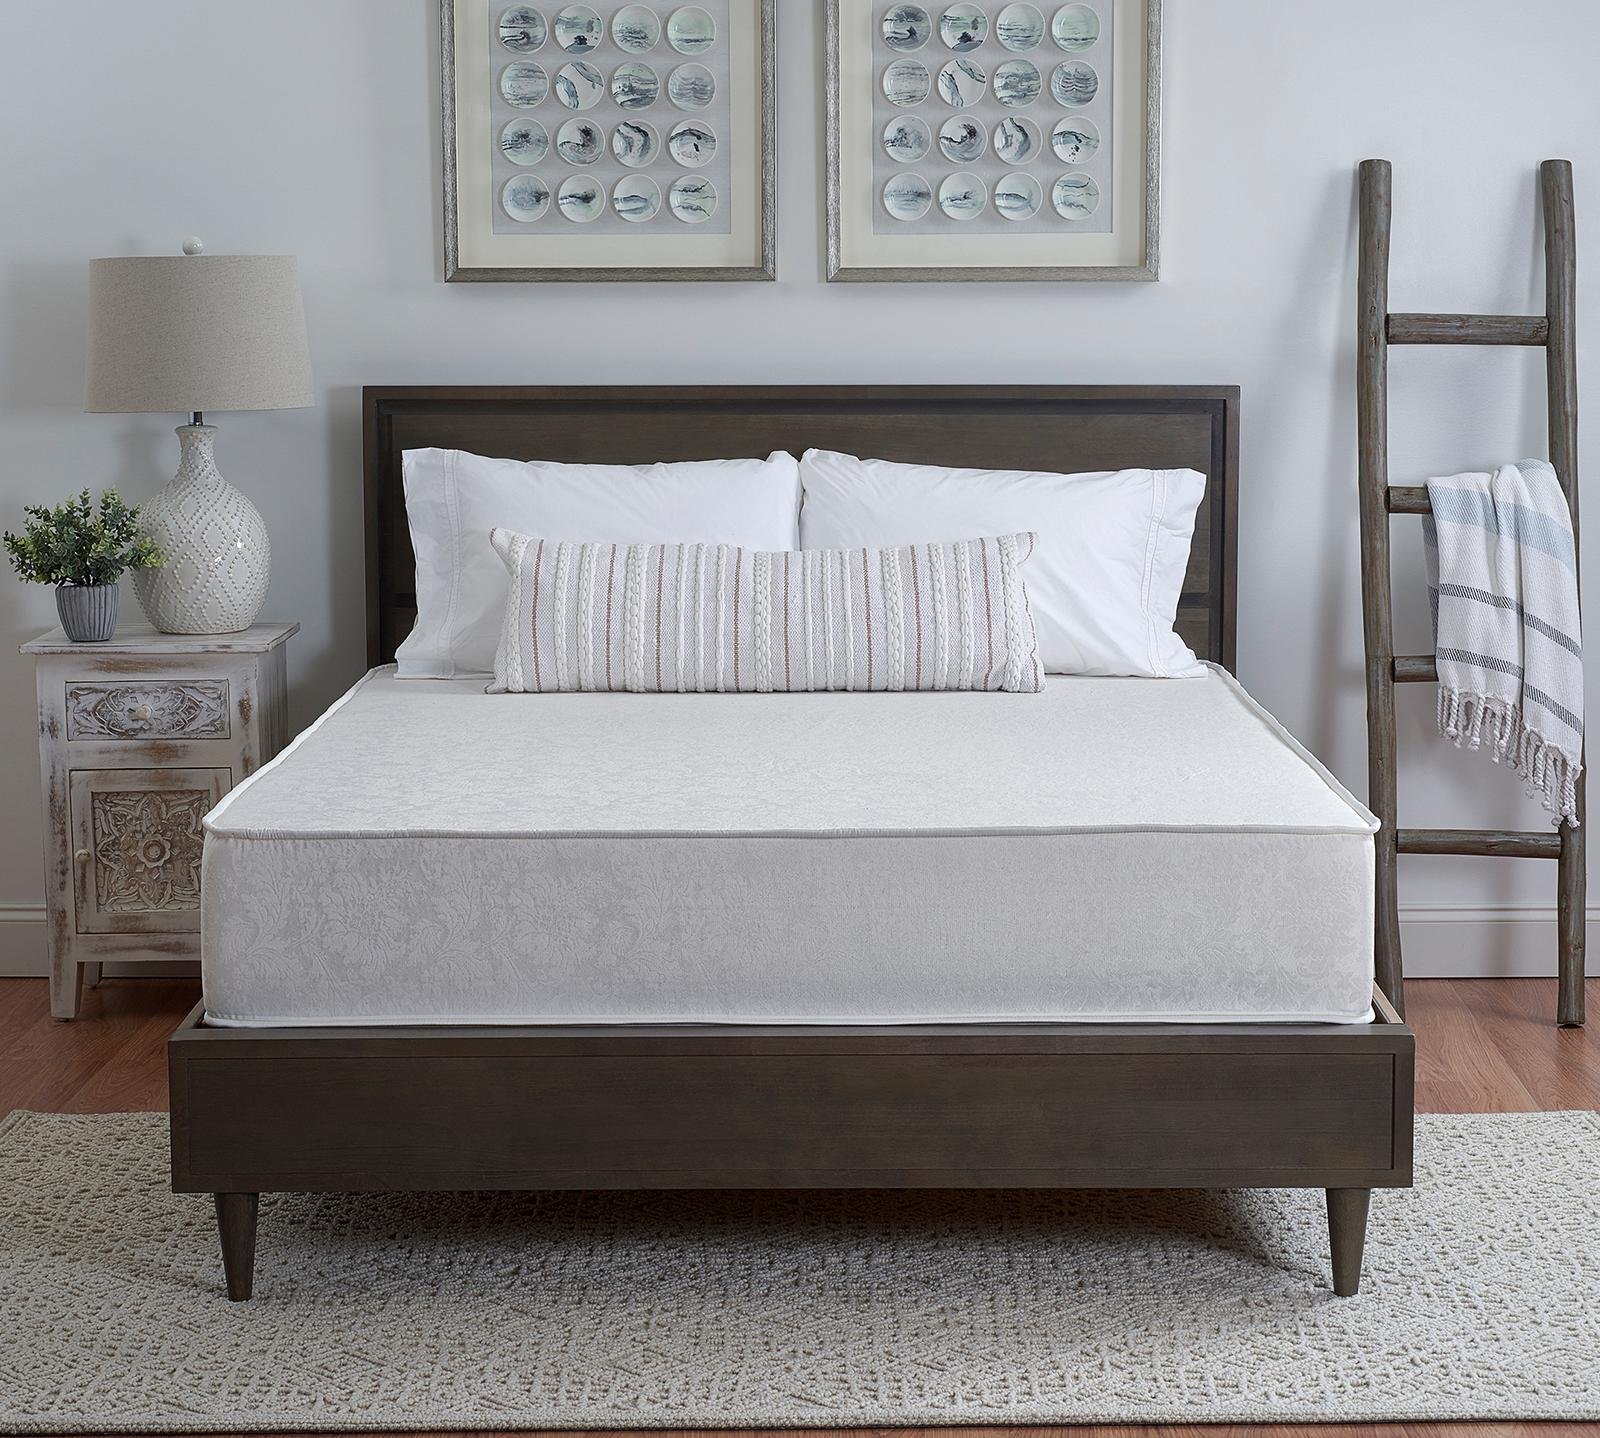 simmons beautyrest recharge signature select ashaway 11 plush mattress. 10\ simmons beautyrest recharge signature select ashaway 11 plush mattress